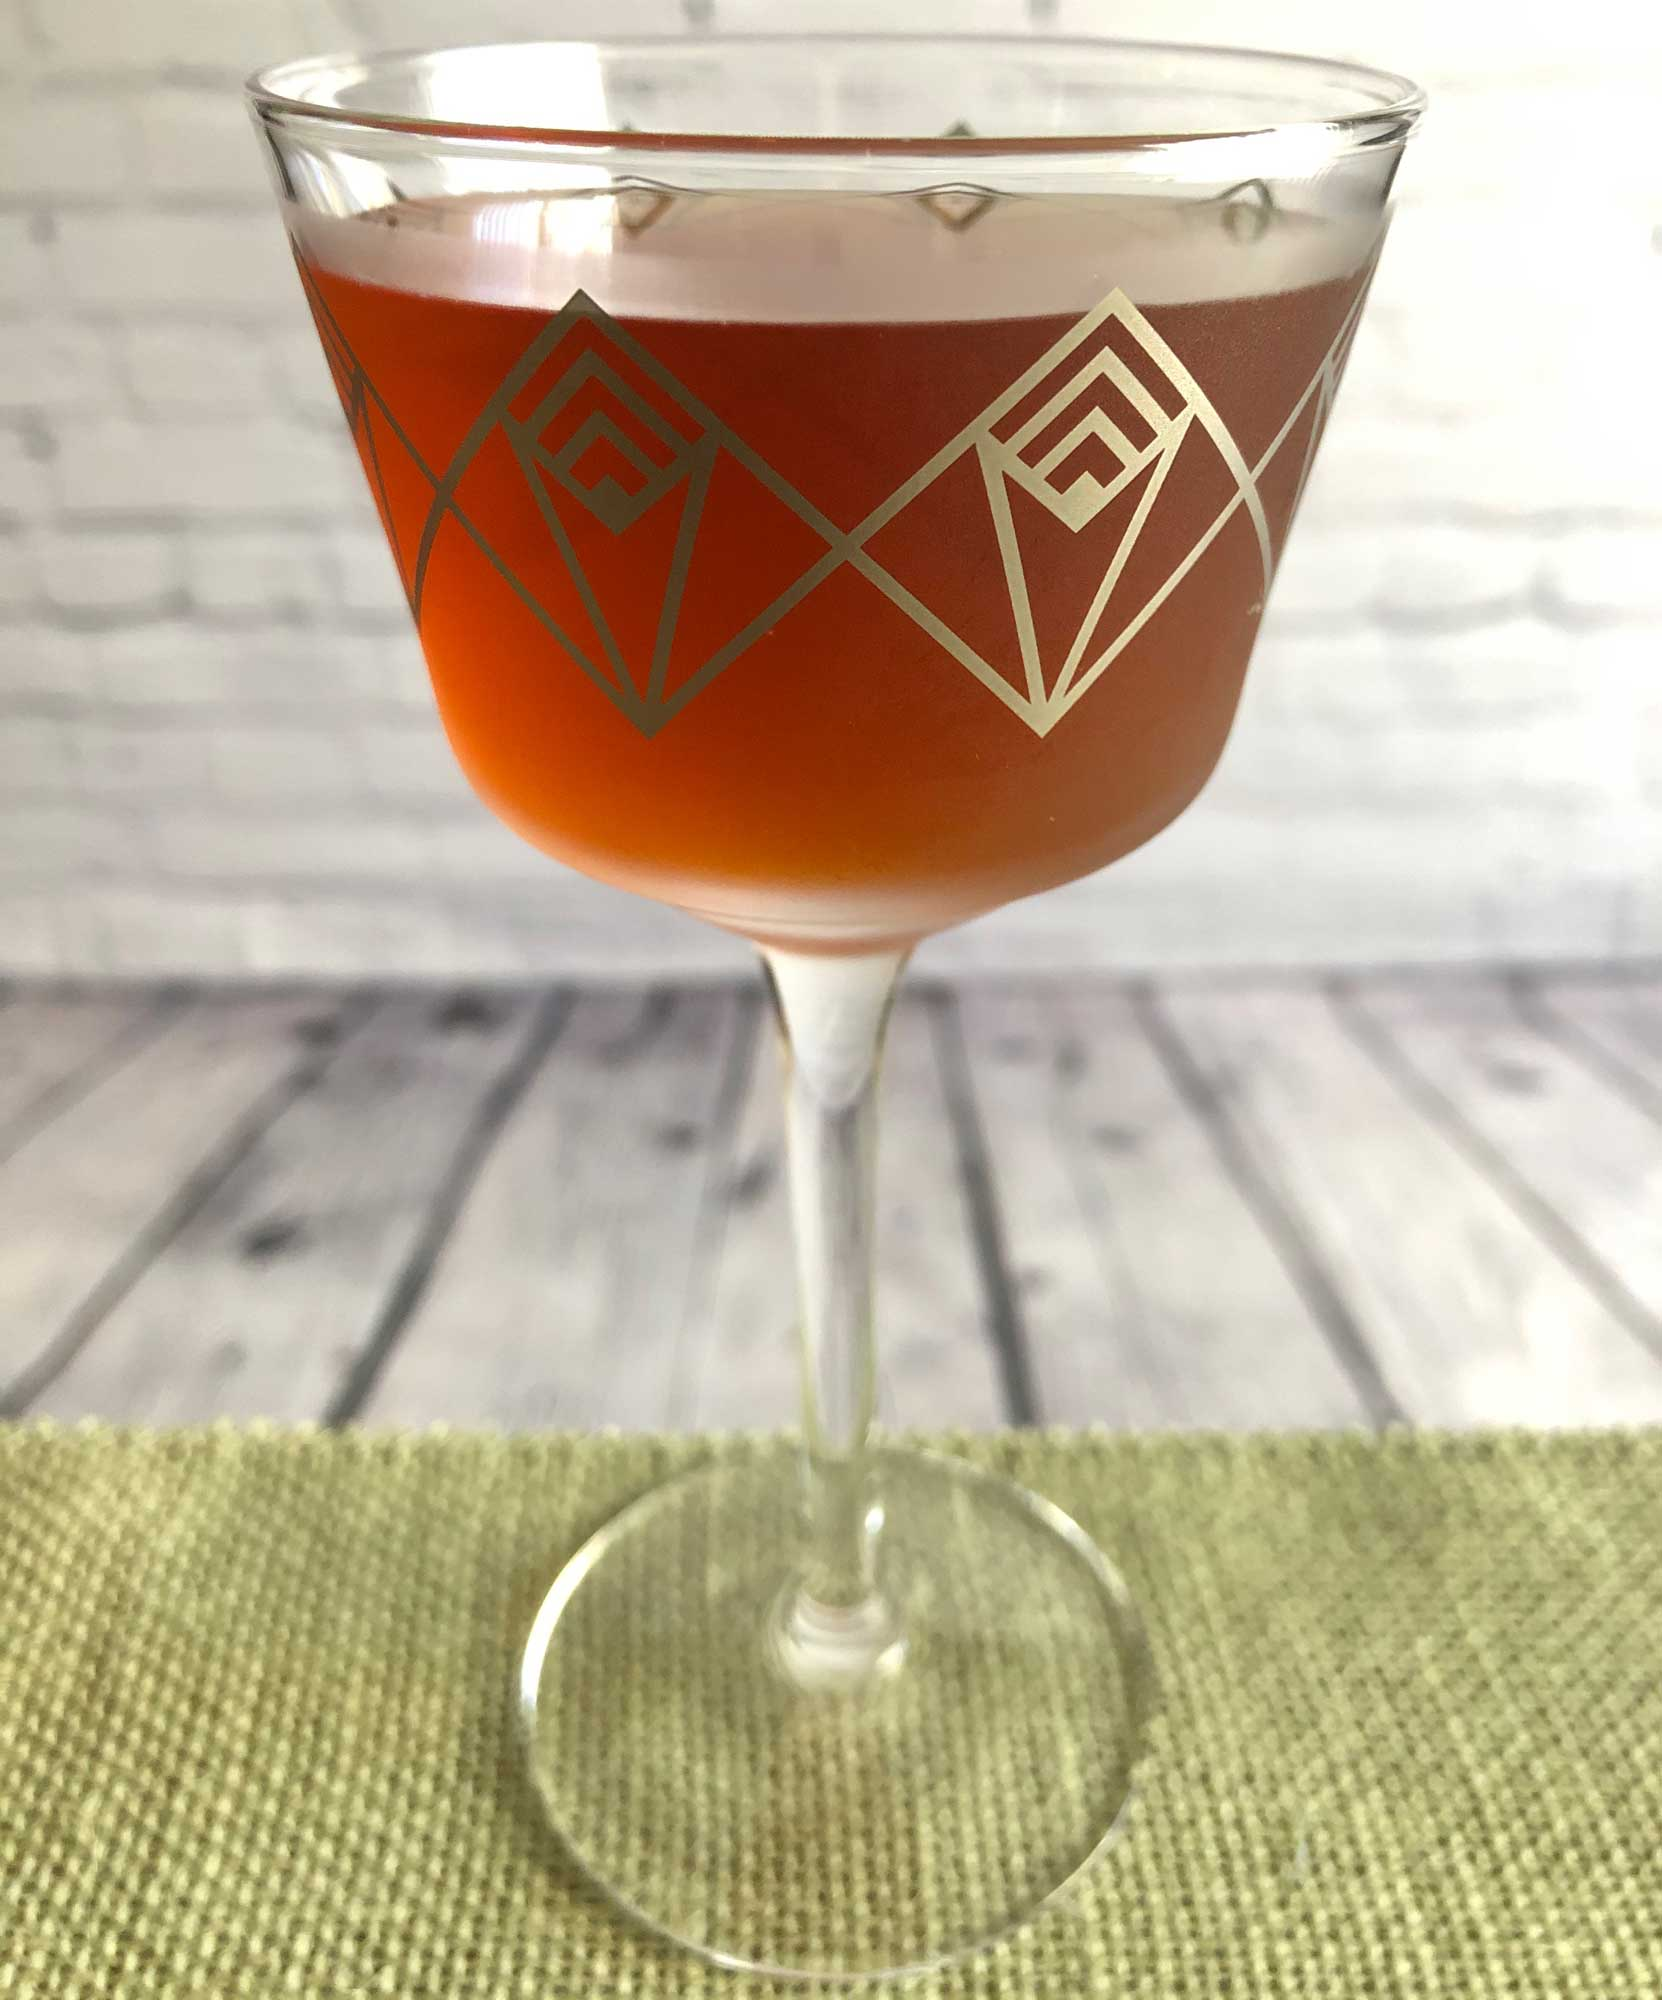 An example of the Careless Whisper, the mixed drink (cocktail), variation from the Whisper, Savoy Cocktail Book, featuring Smith & Cross Traditional Jamaica Rum, Cocchi Vermouth di Torino, Dolin Dry Vermouth de Chambéry, orange bitters, and Angostura bitters; photo by Lee Edwards